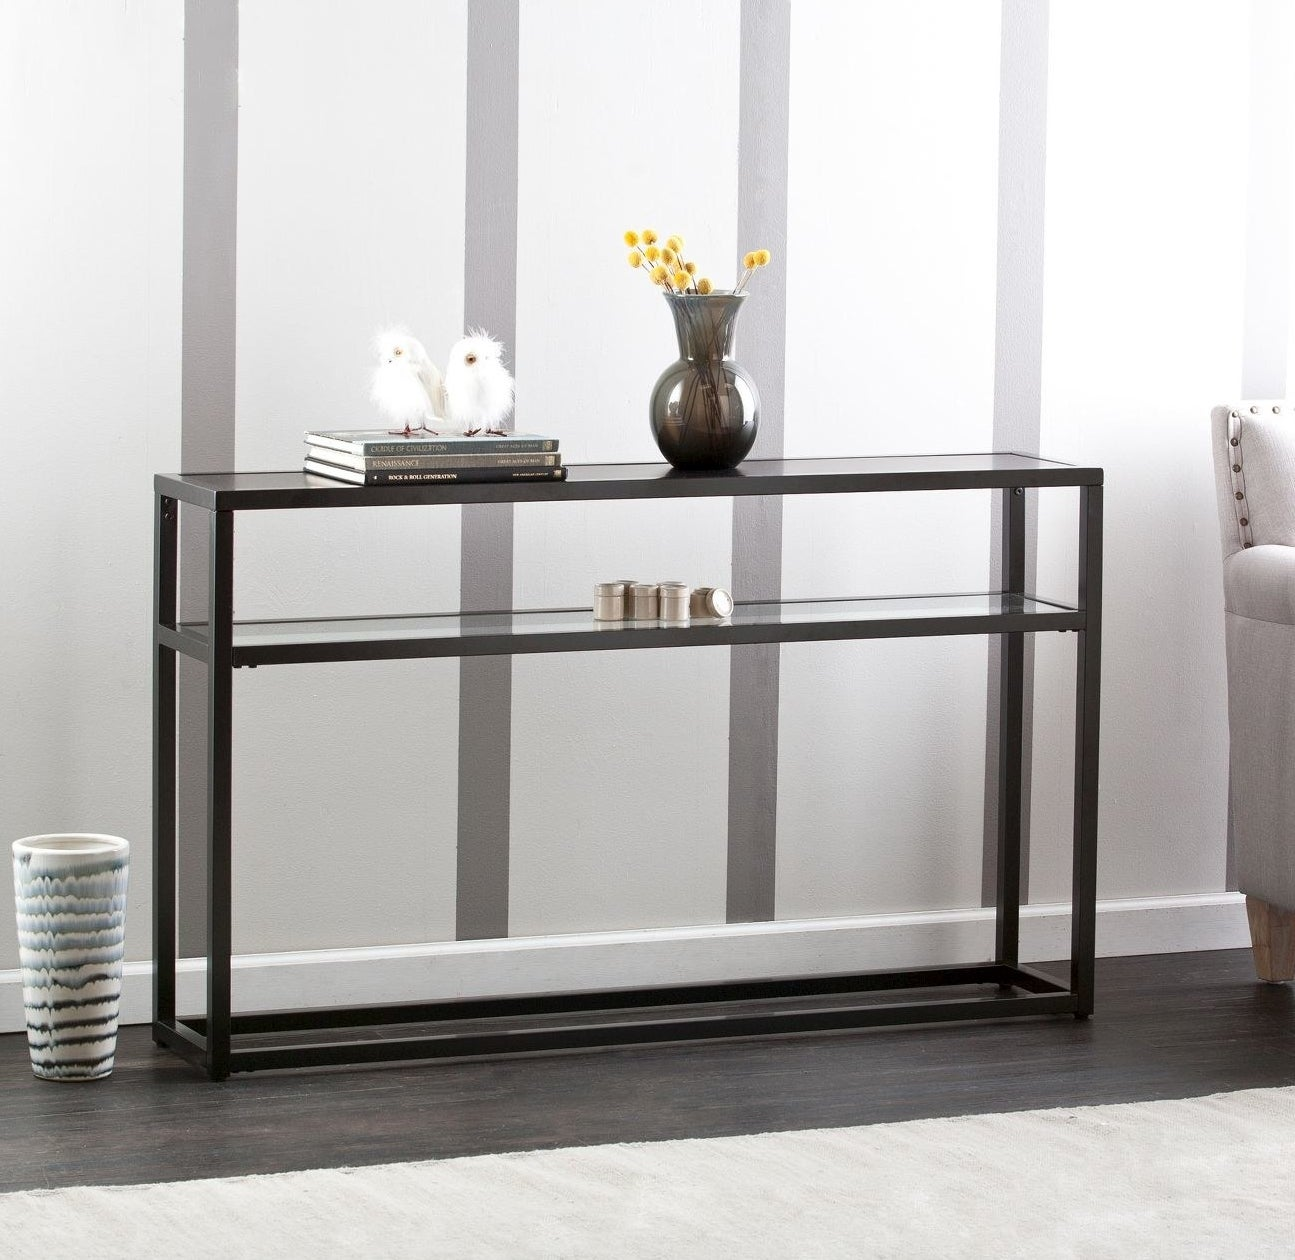 A black console table with a glass top